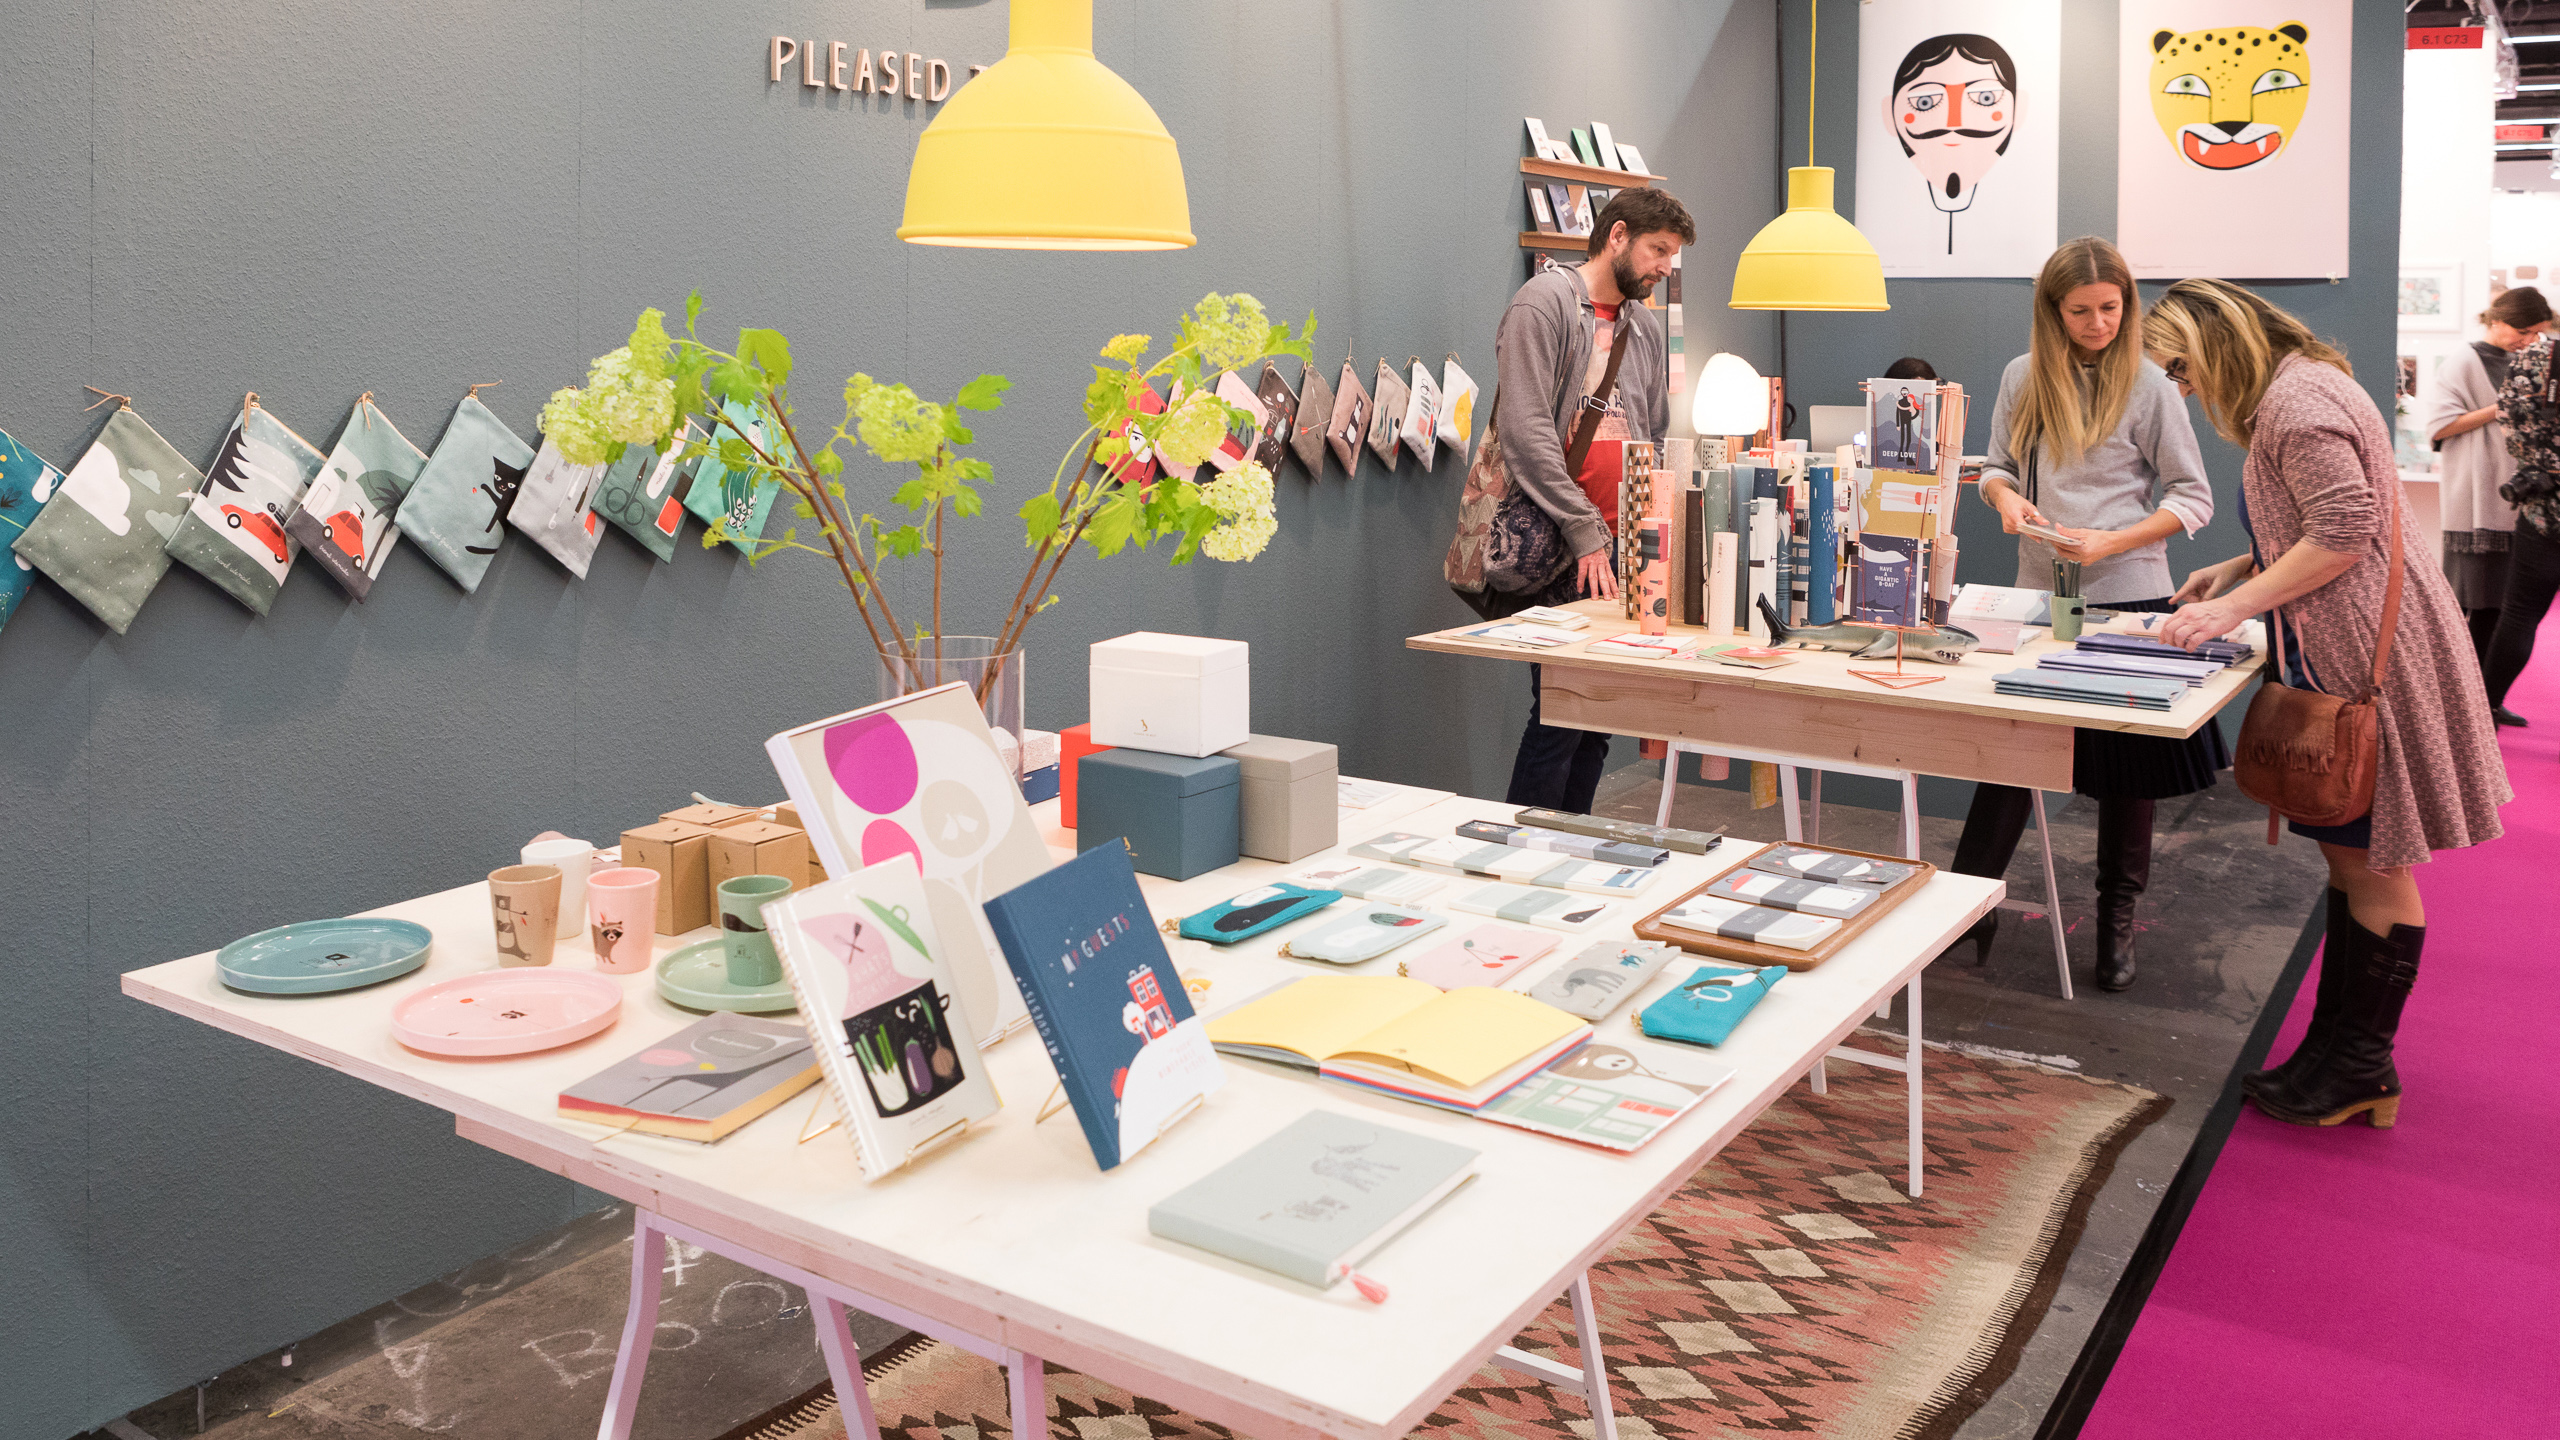 The Stationery Trends Trend Conscious Paper Goods And Gift Items